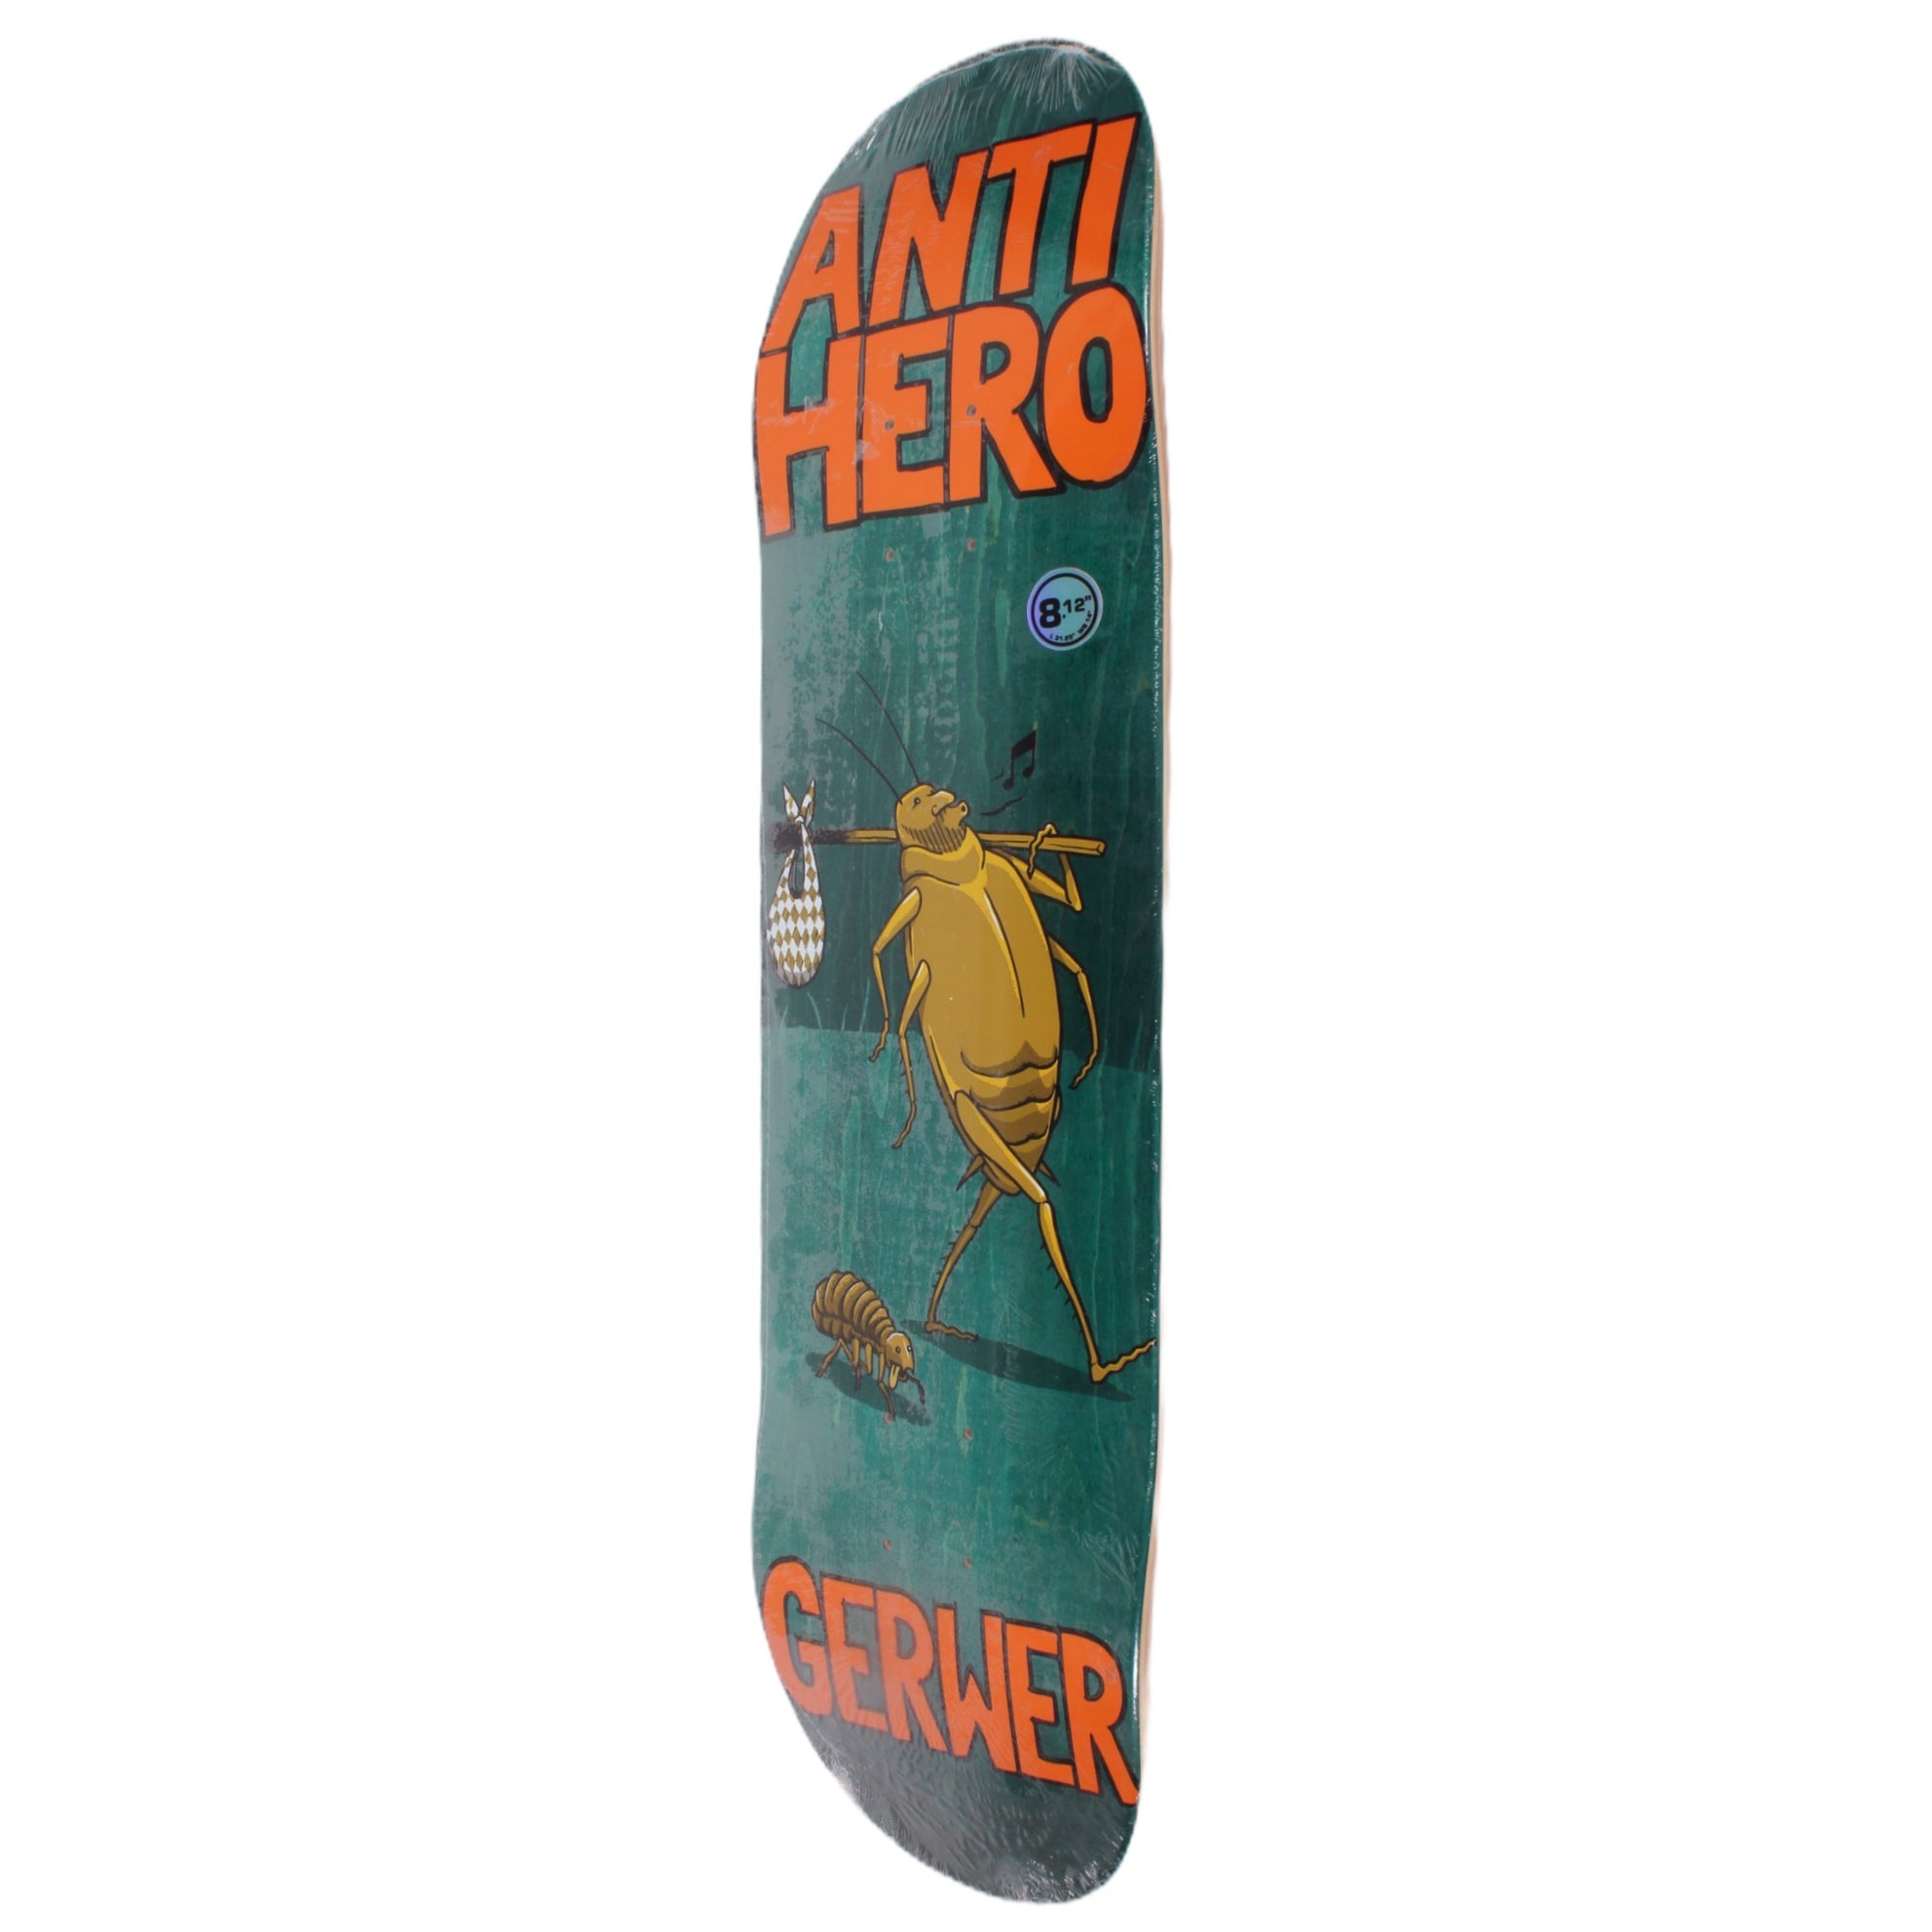 Overripe Anti Hero Deck Roaches Gerwer 2015